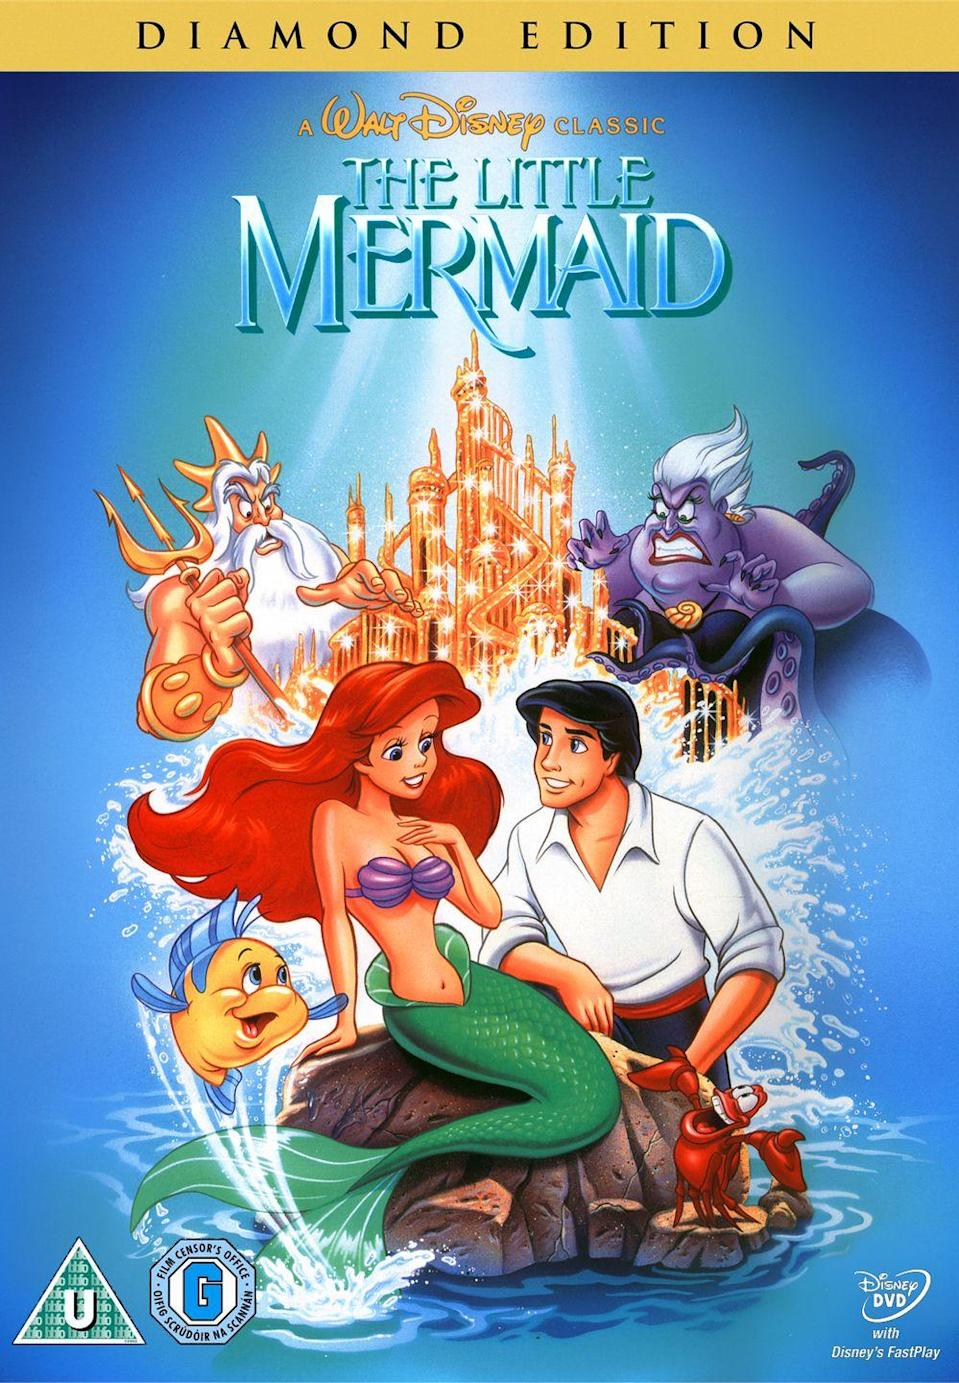 """<p>The remake of this Disney favorite <a href=""""http://deadline.com/2016/08/the-little-mermaid-lin-manuel-miranda-alan-menken-hamilton-disney-live-action-film-1201803536/"""" rel=""""nofollow noopener"""" target=""""_blank"""" data-ylk=""""slk:will reportedly feature a mix of your fave songs"""" class=""""link rapid-noclick-resp"""">will reportedly feature a mix of your fave songs</a> and new ones from the genius behind the original soundtrack, Alan Menken, and <em>Hamilton</em> scribe, Lin-Manuel Miranda. No word yet on when the movie becomes a part of our world.<br></p>"""